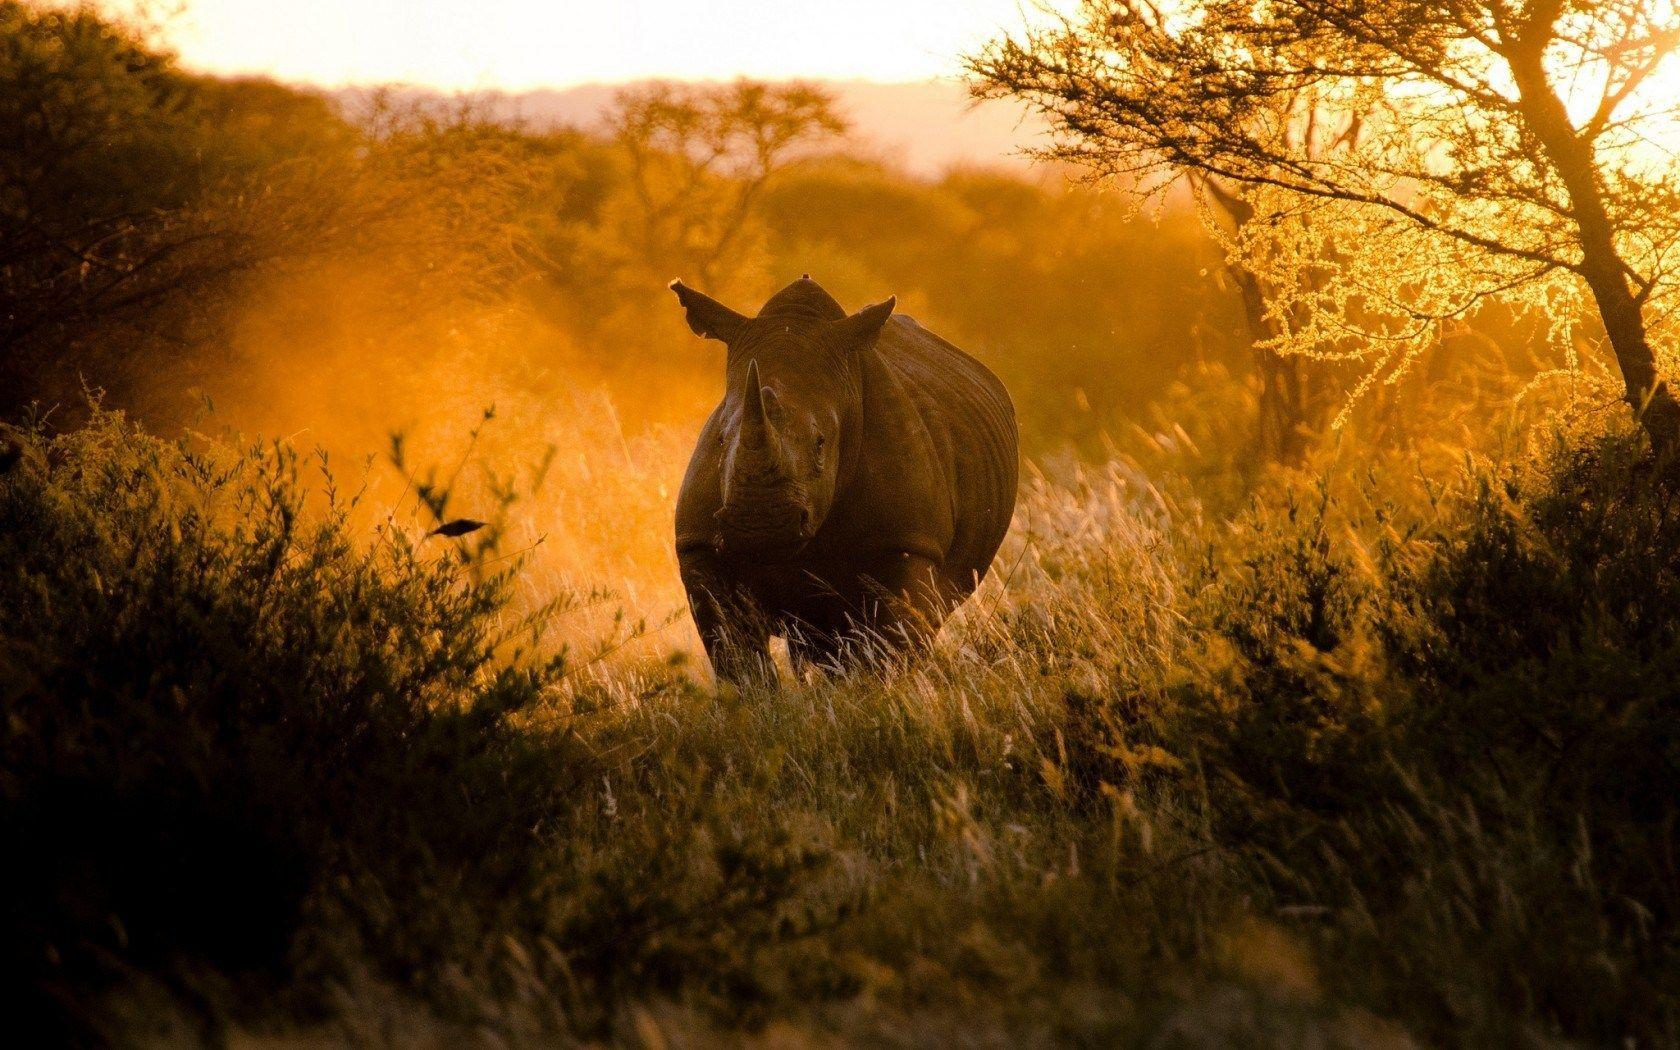 Africa Rhinoceros Running Nature HD Wallpaper - ZoomWalls